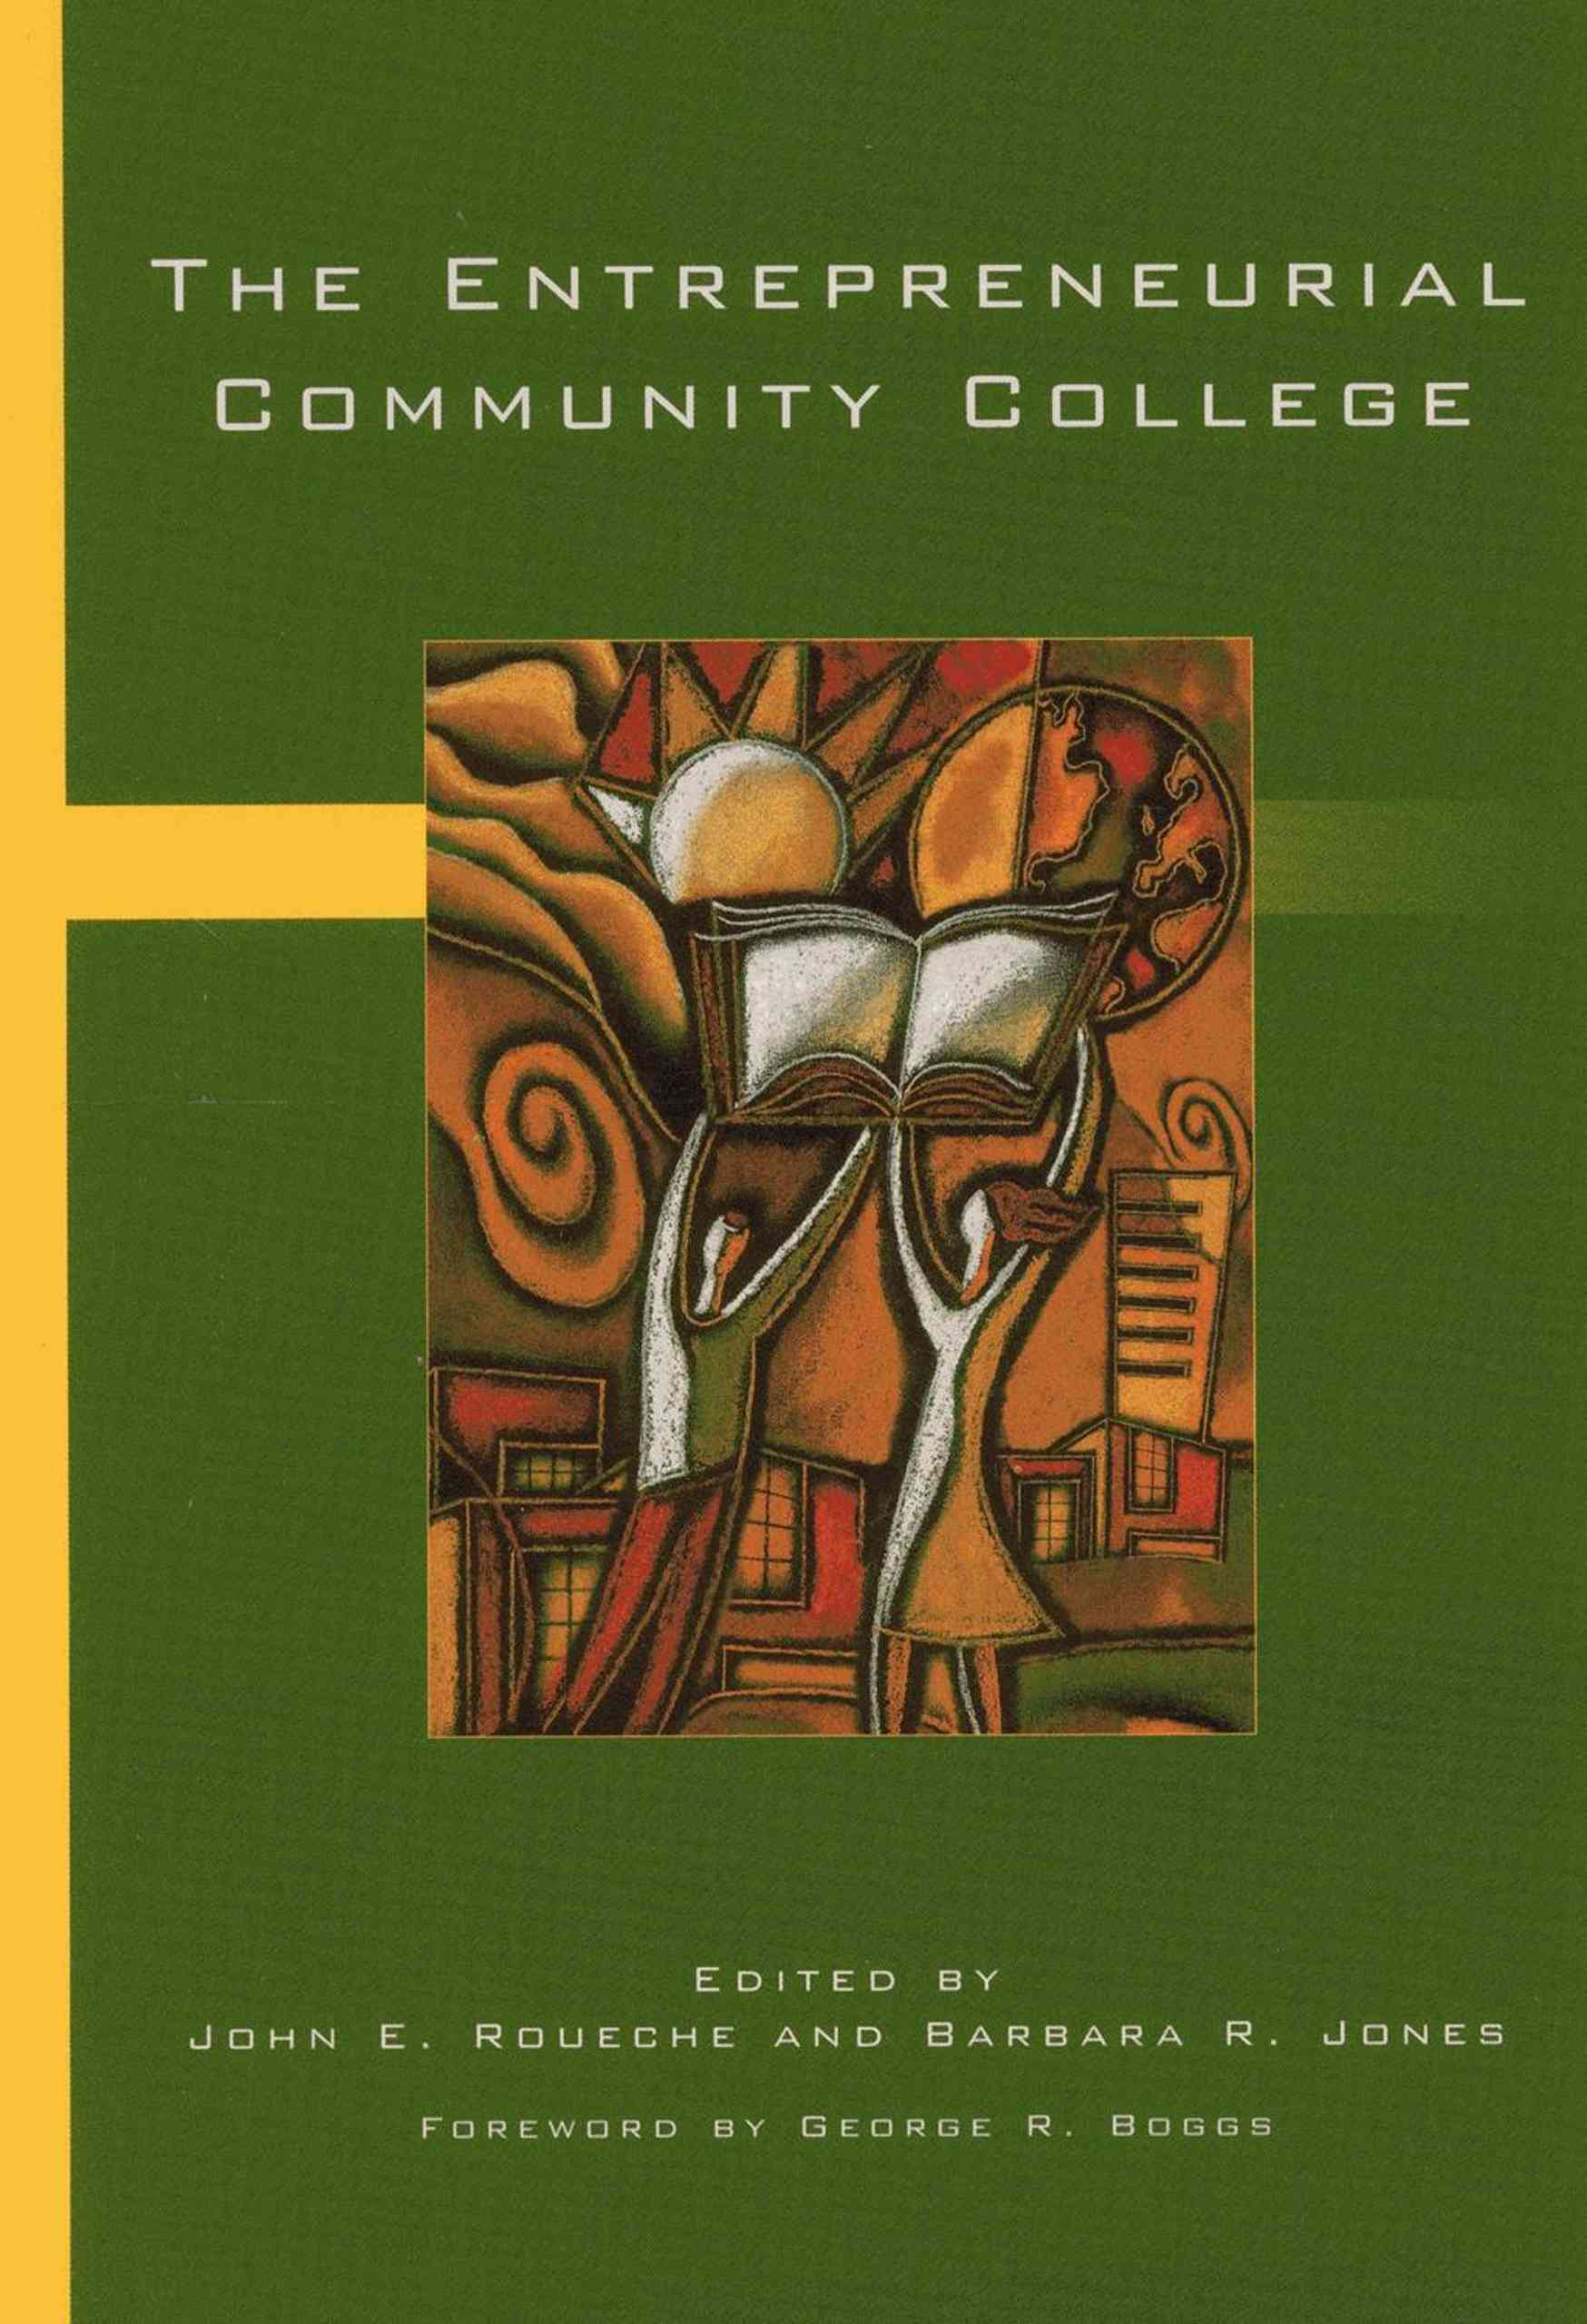 The Entrepreneurial Community College By Roueche, John E. (EDT)/ Jones, Barbara R. (EDT)/ Boggs, George R. (FRW)